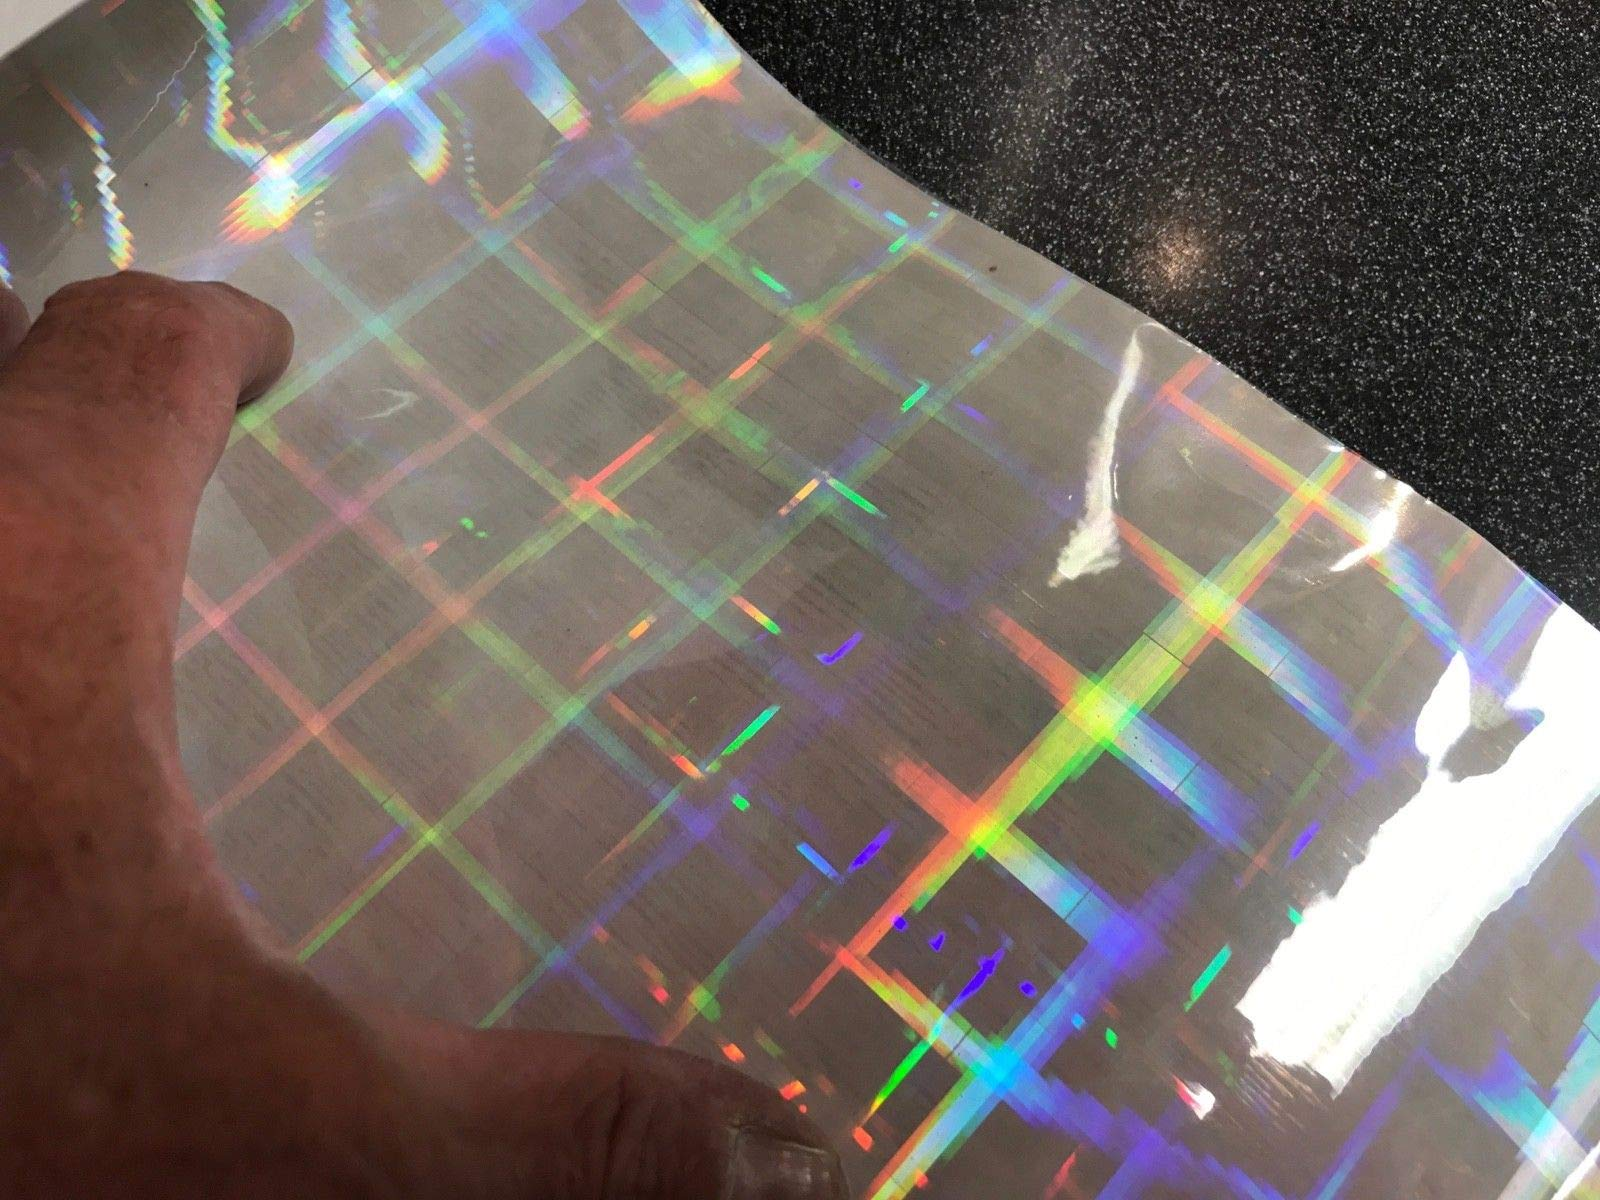 Transparent Holographic Film, Overlay Novelty Grade (Clear Plaid, 24 inch x 10 ft)